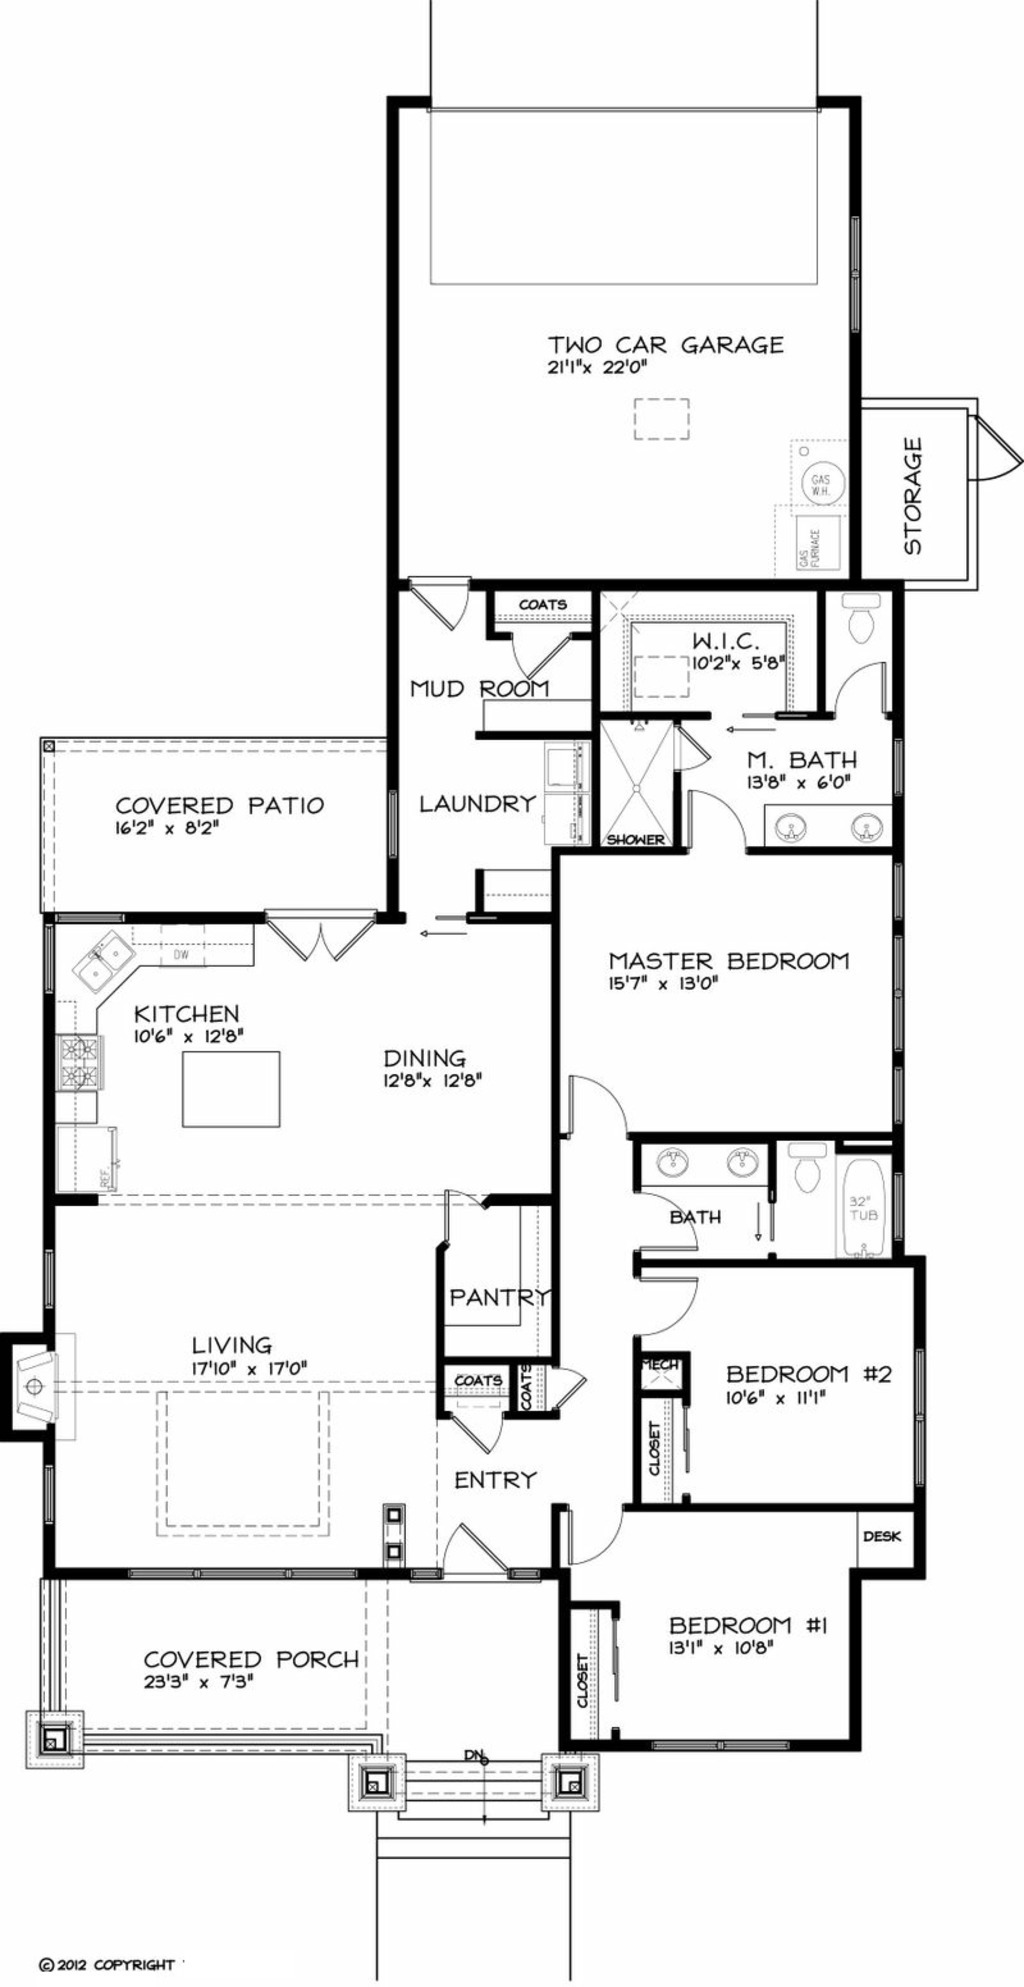 Craftsman Style House Plans One Story Beautiful Craftsman Style House Plan 3 Beds 2 Baths 1749 Sq Ft Plan 434 17